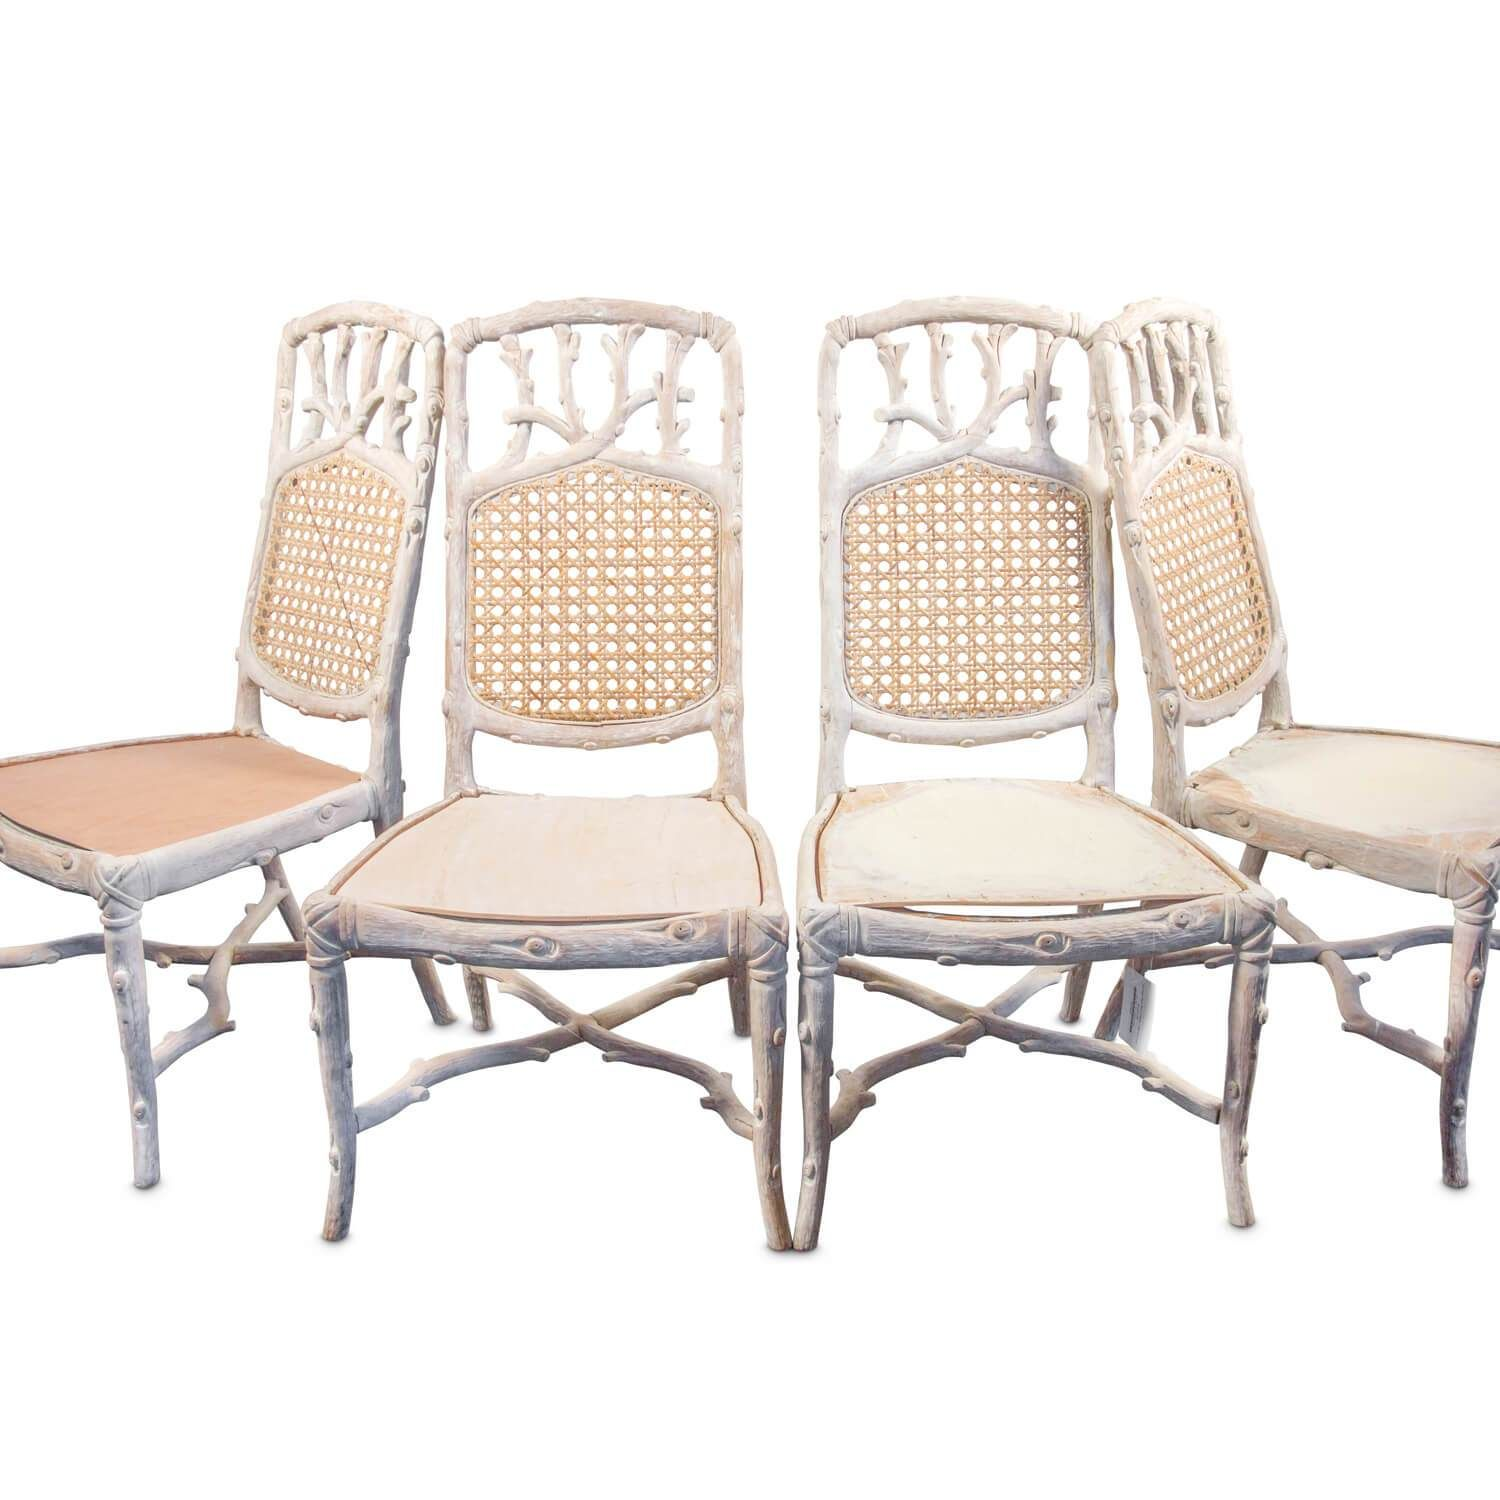 Vintage Faux Bois Chairs Set Of Four Products Pinterest Faux Bois And Products